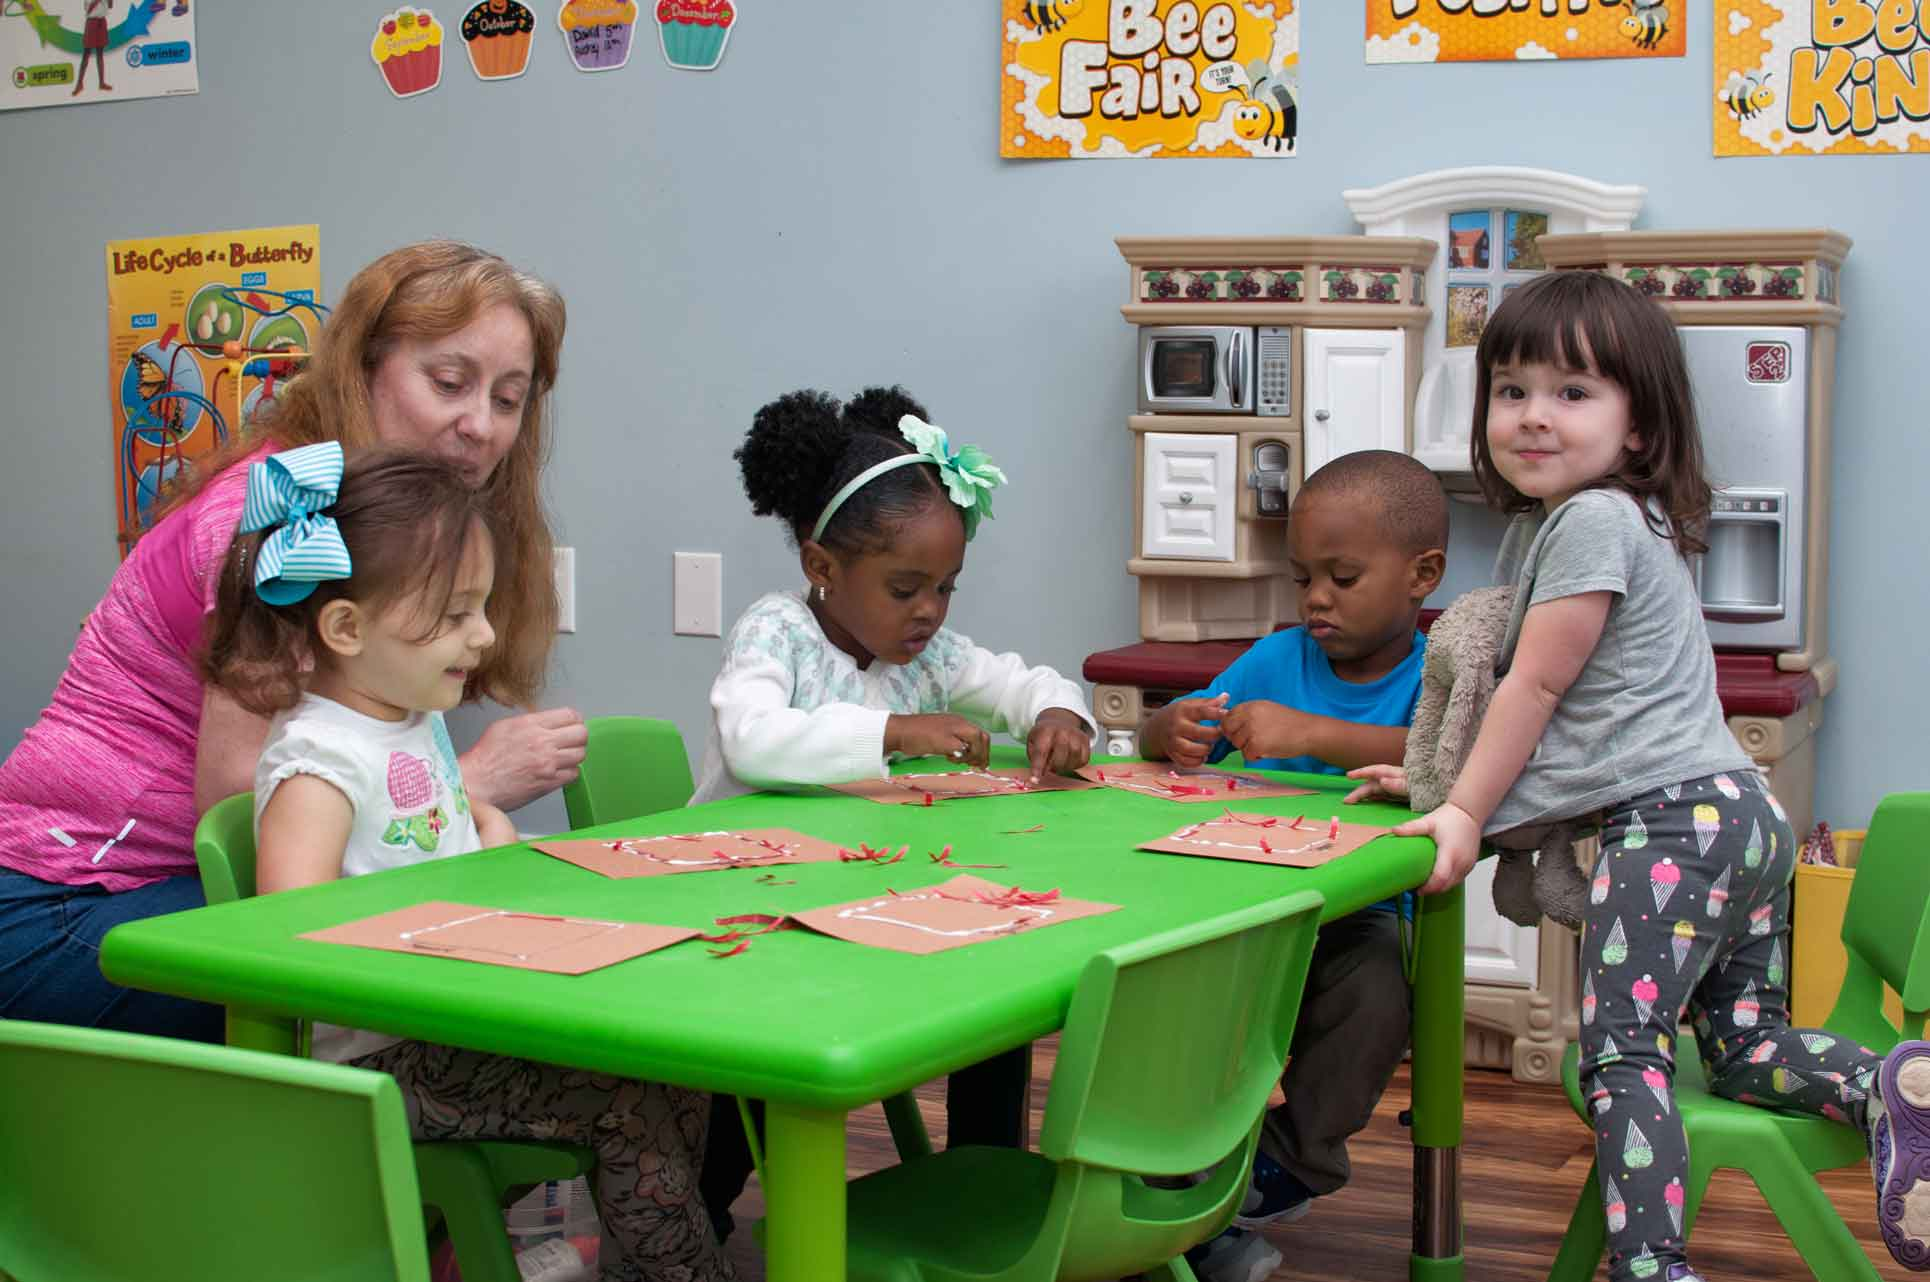 Private-Christian-Preschool-at-Faith-Christian-Academy-between-Burlington-and-Greensboro-NC